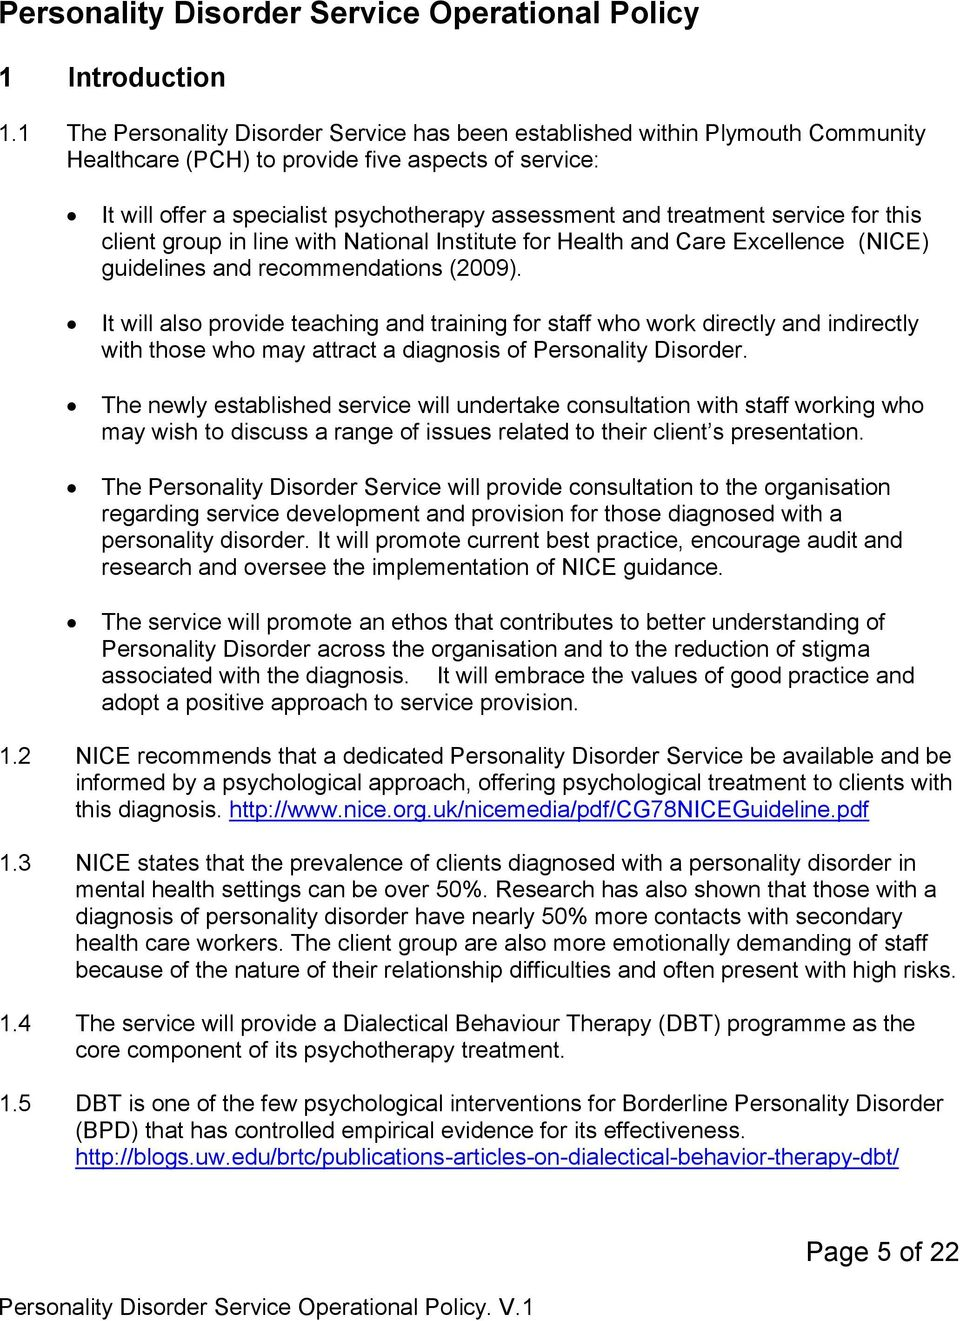 Personality Disorder Service Operational Policy  Version No